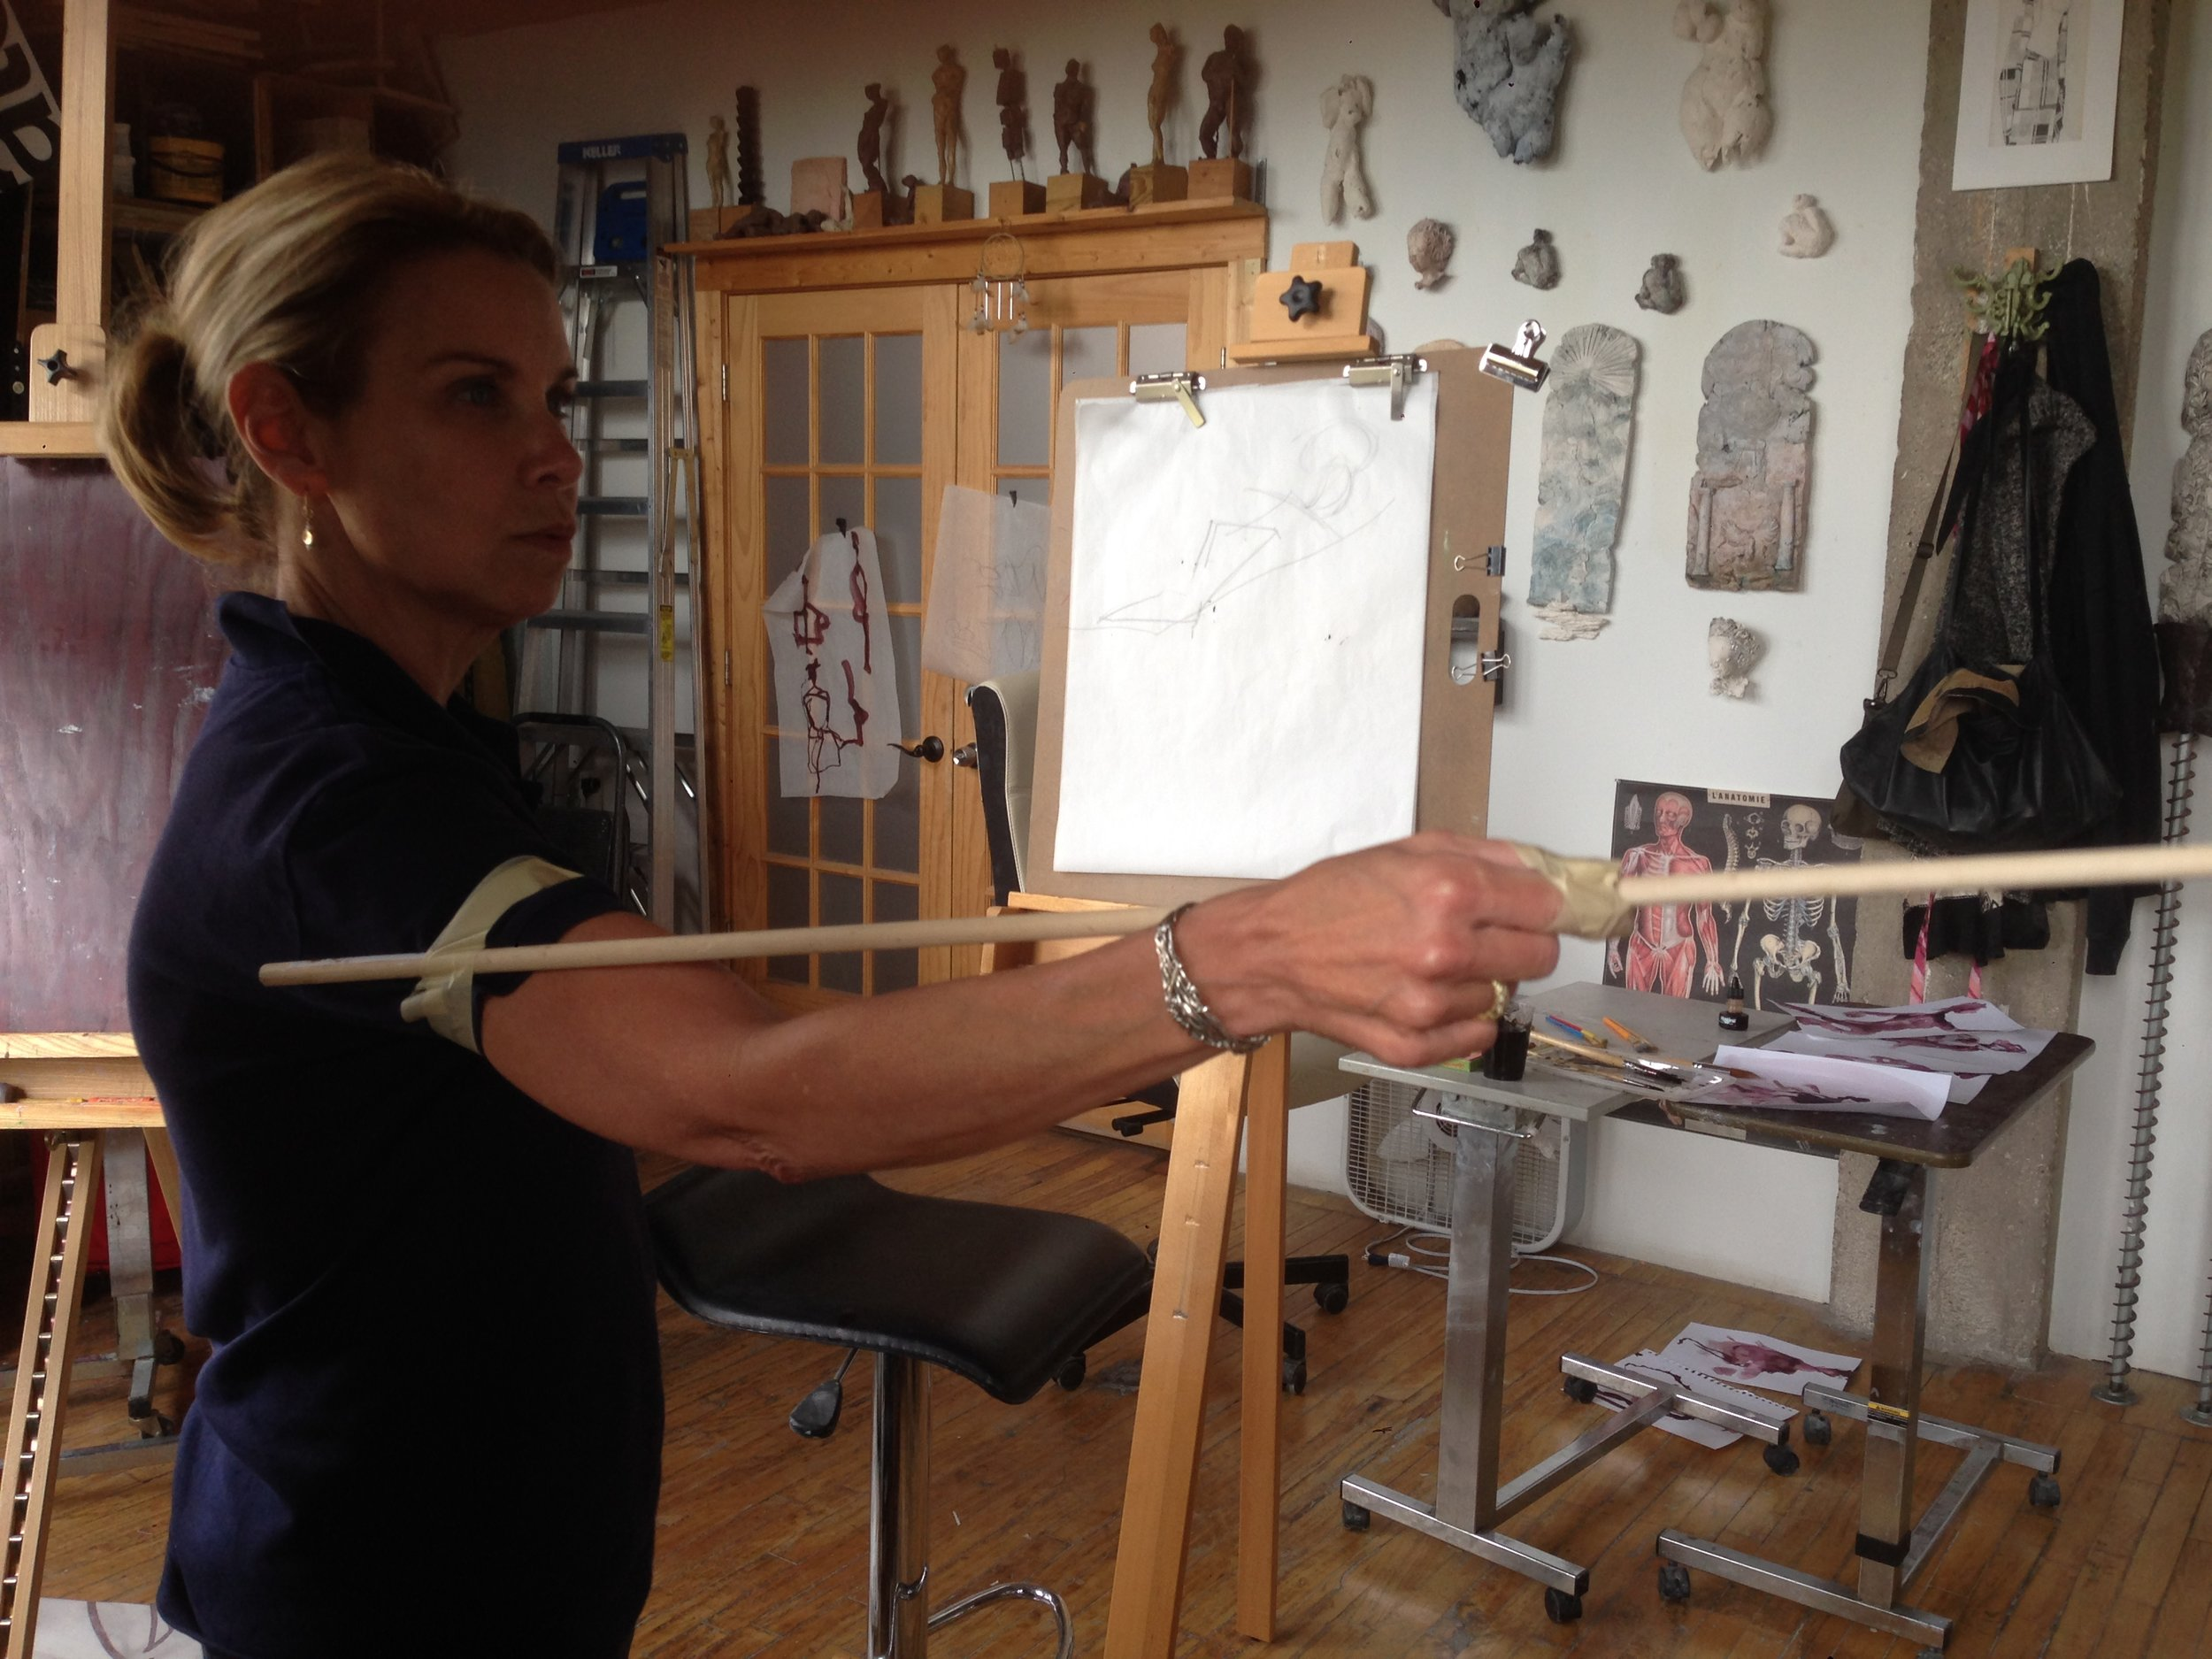 Mary using a lengthy brush to improve her skills! You go girl!